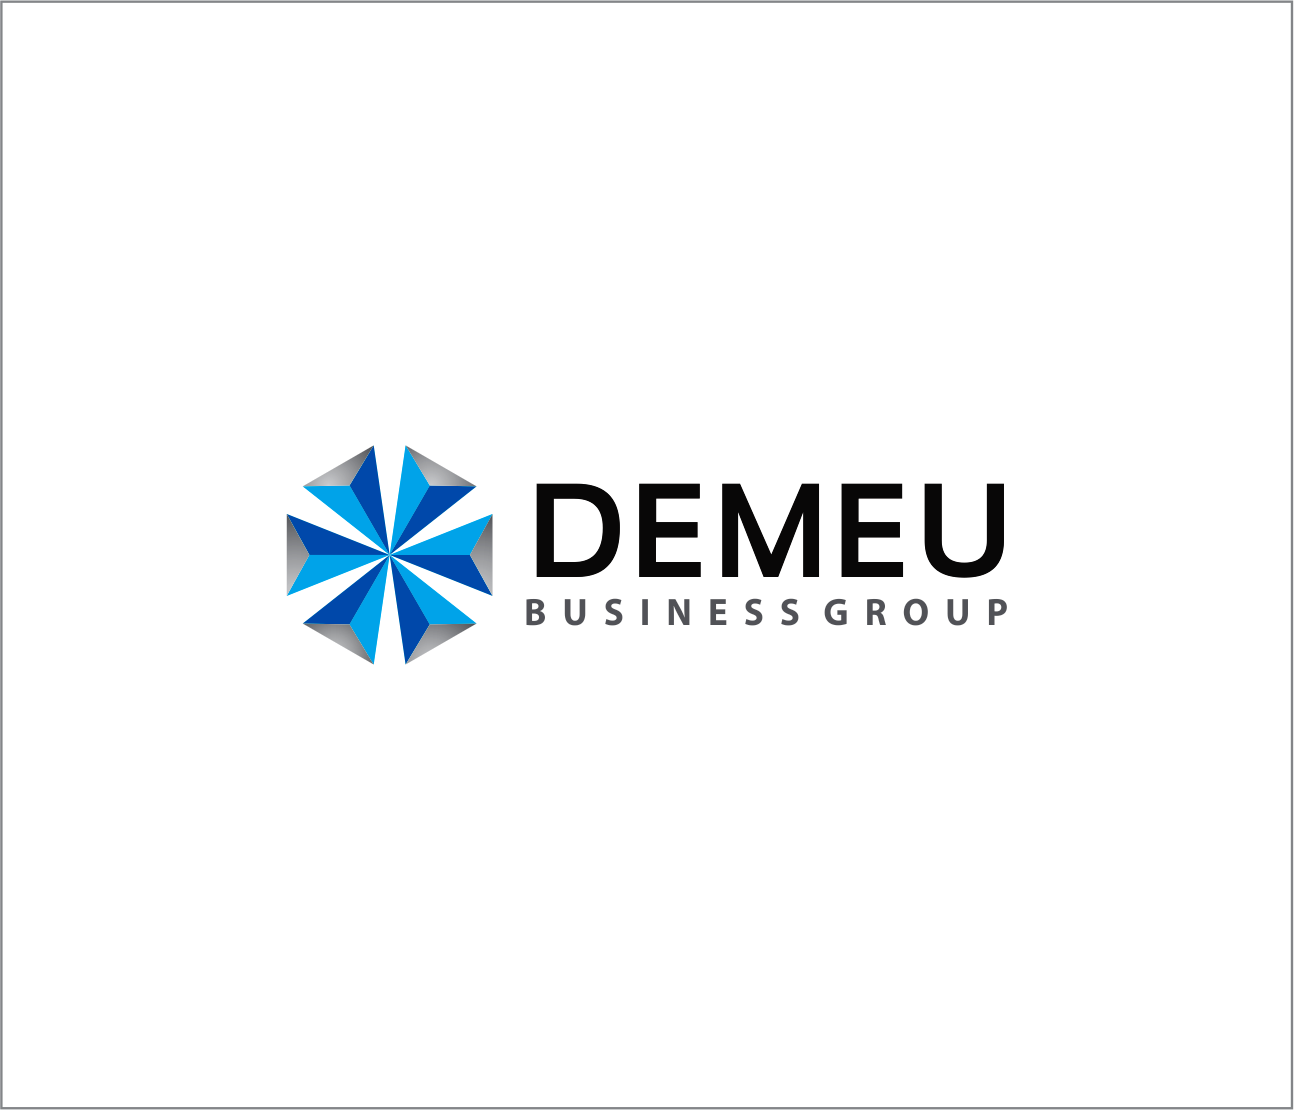 Logo Design by Armada Jamaluddin - Entry No. 122 in the Logo Design Contest Captivating Logo Design for DEMEU Business Group.